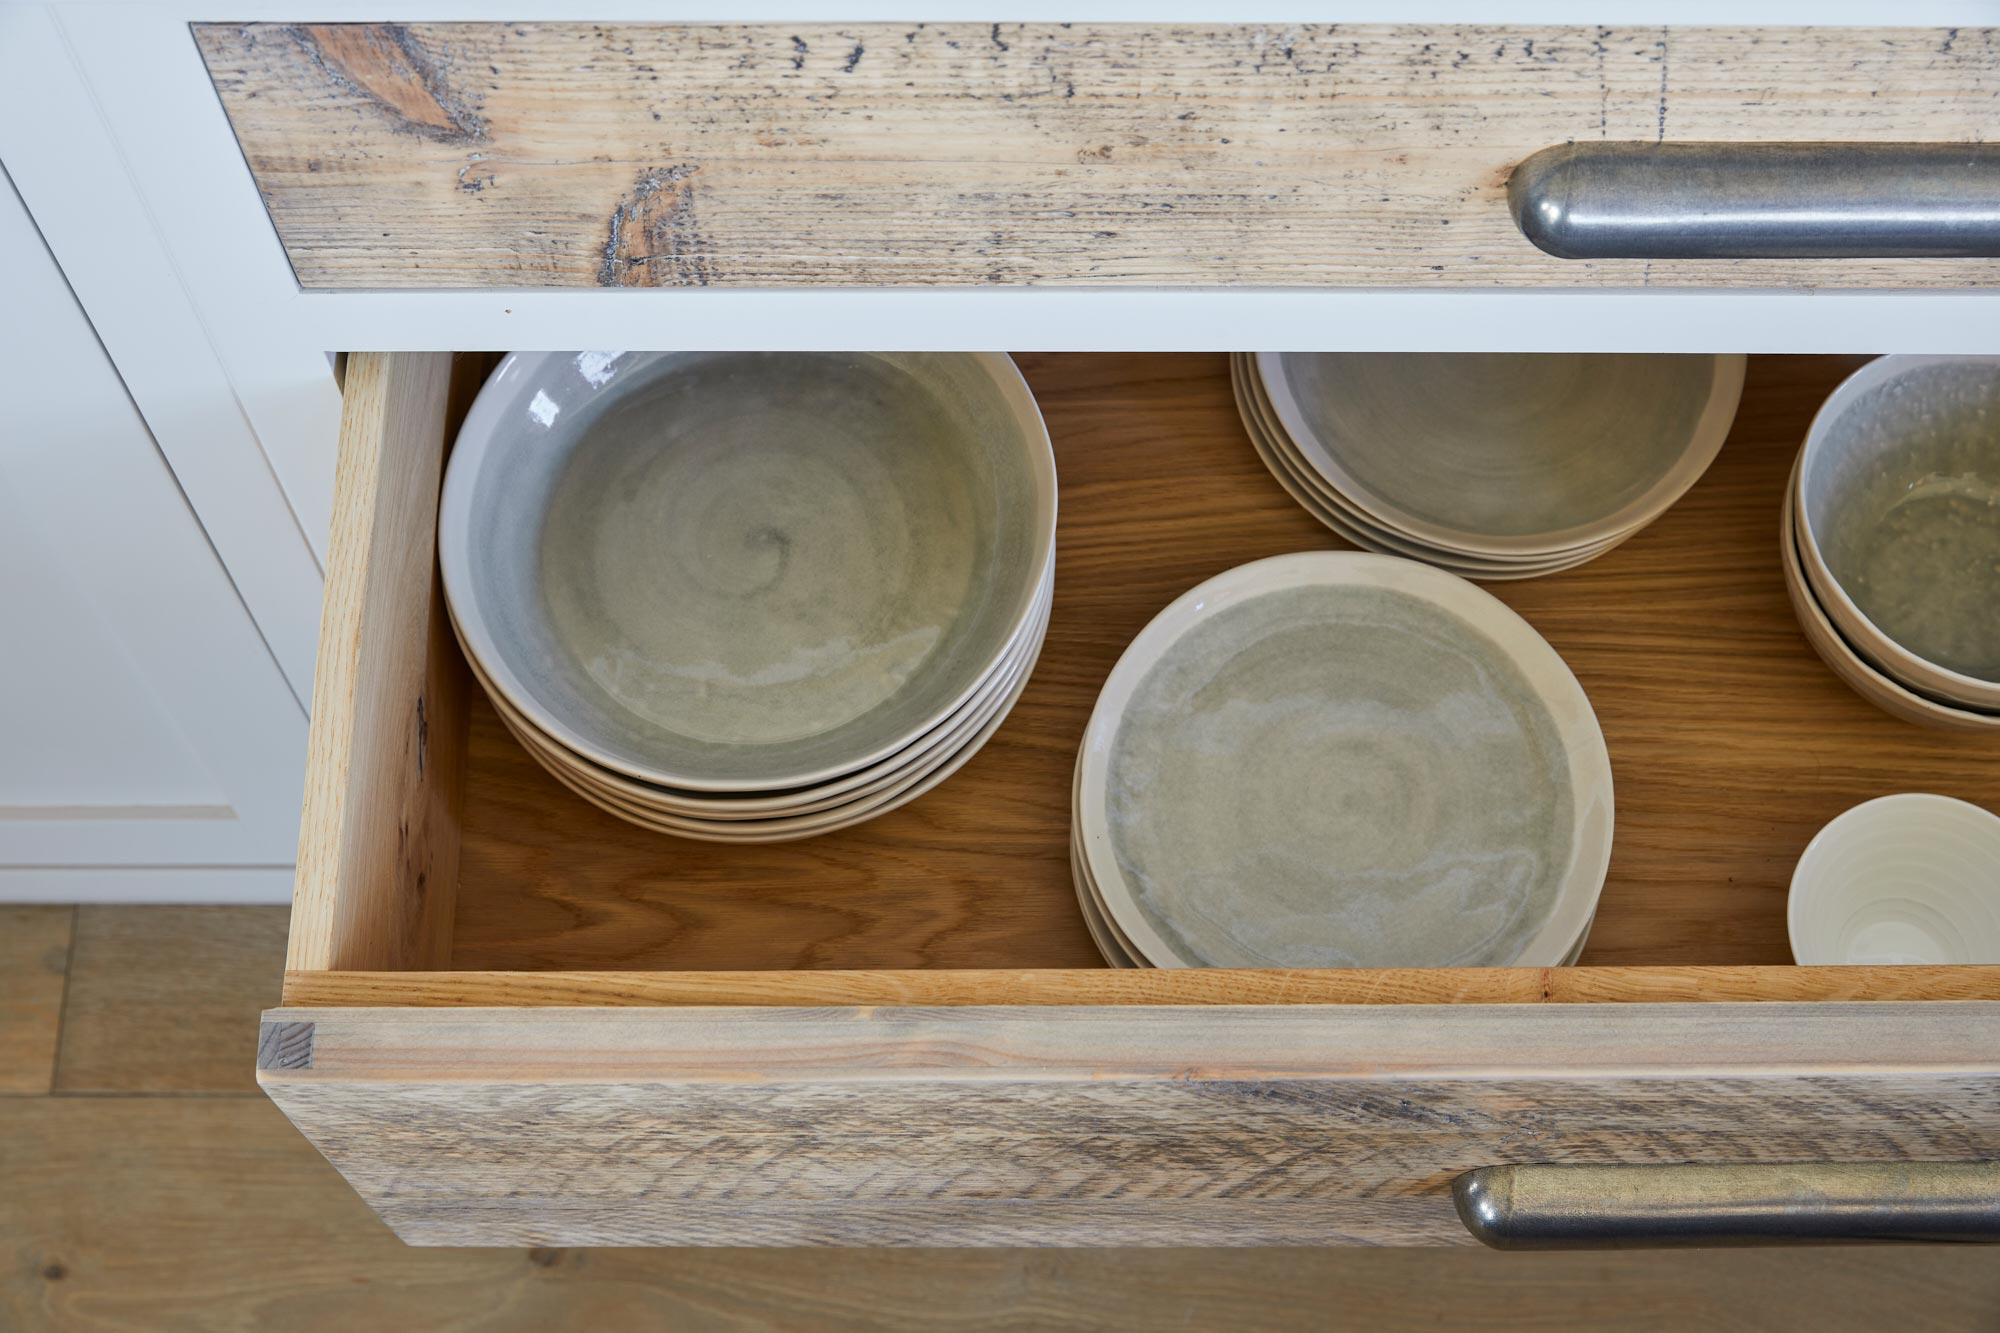 Ceramic bowls and plates in deep kitchen pan drawers